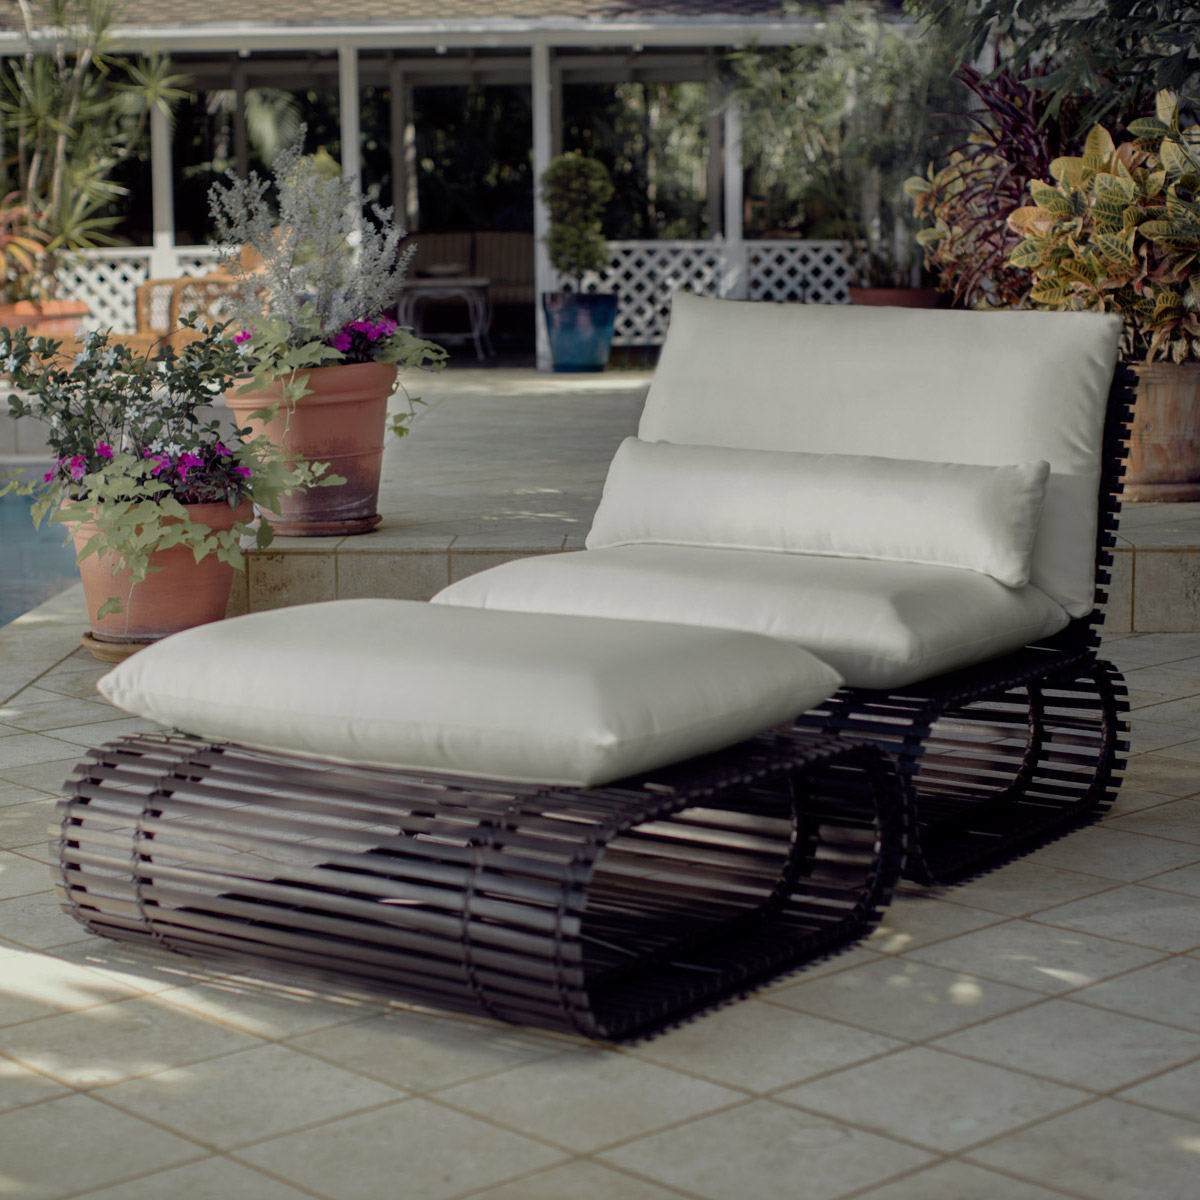 stori modern Novel outdoor Lounge chair and ottoman